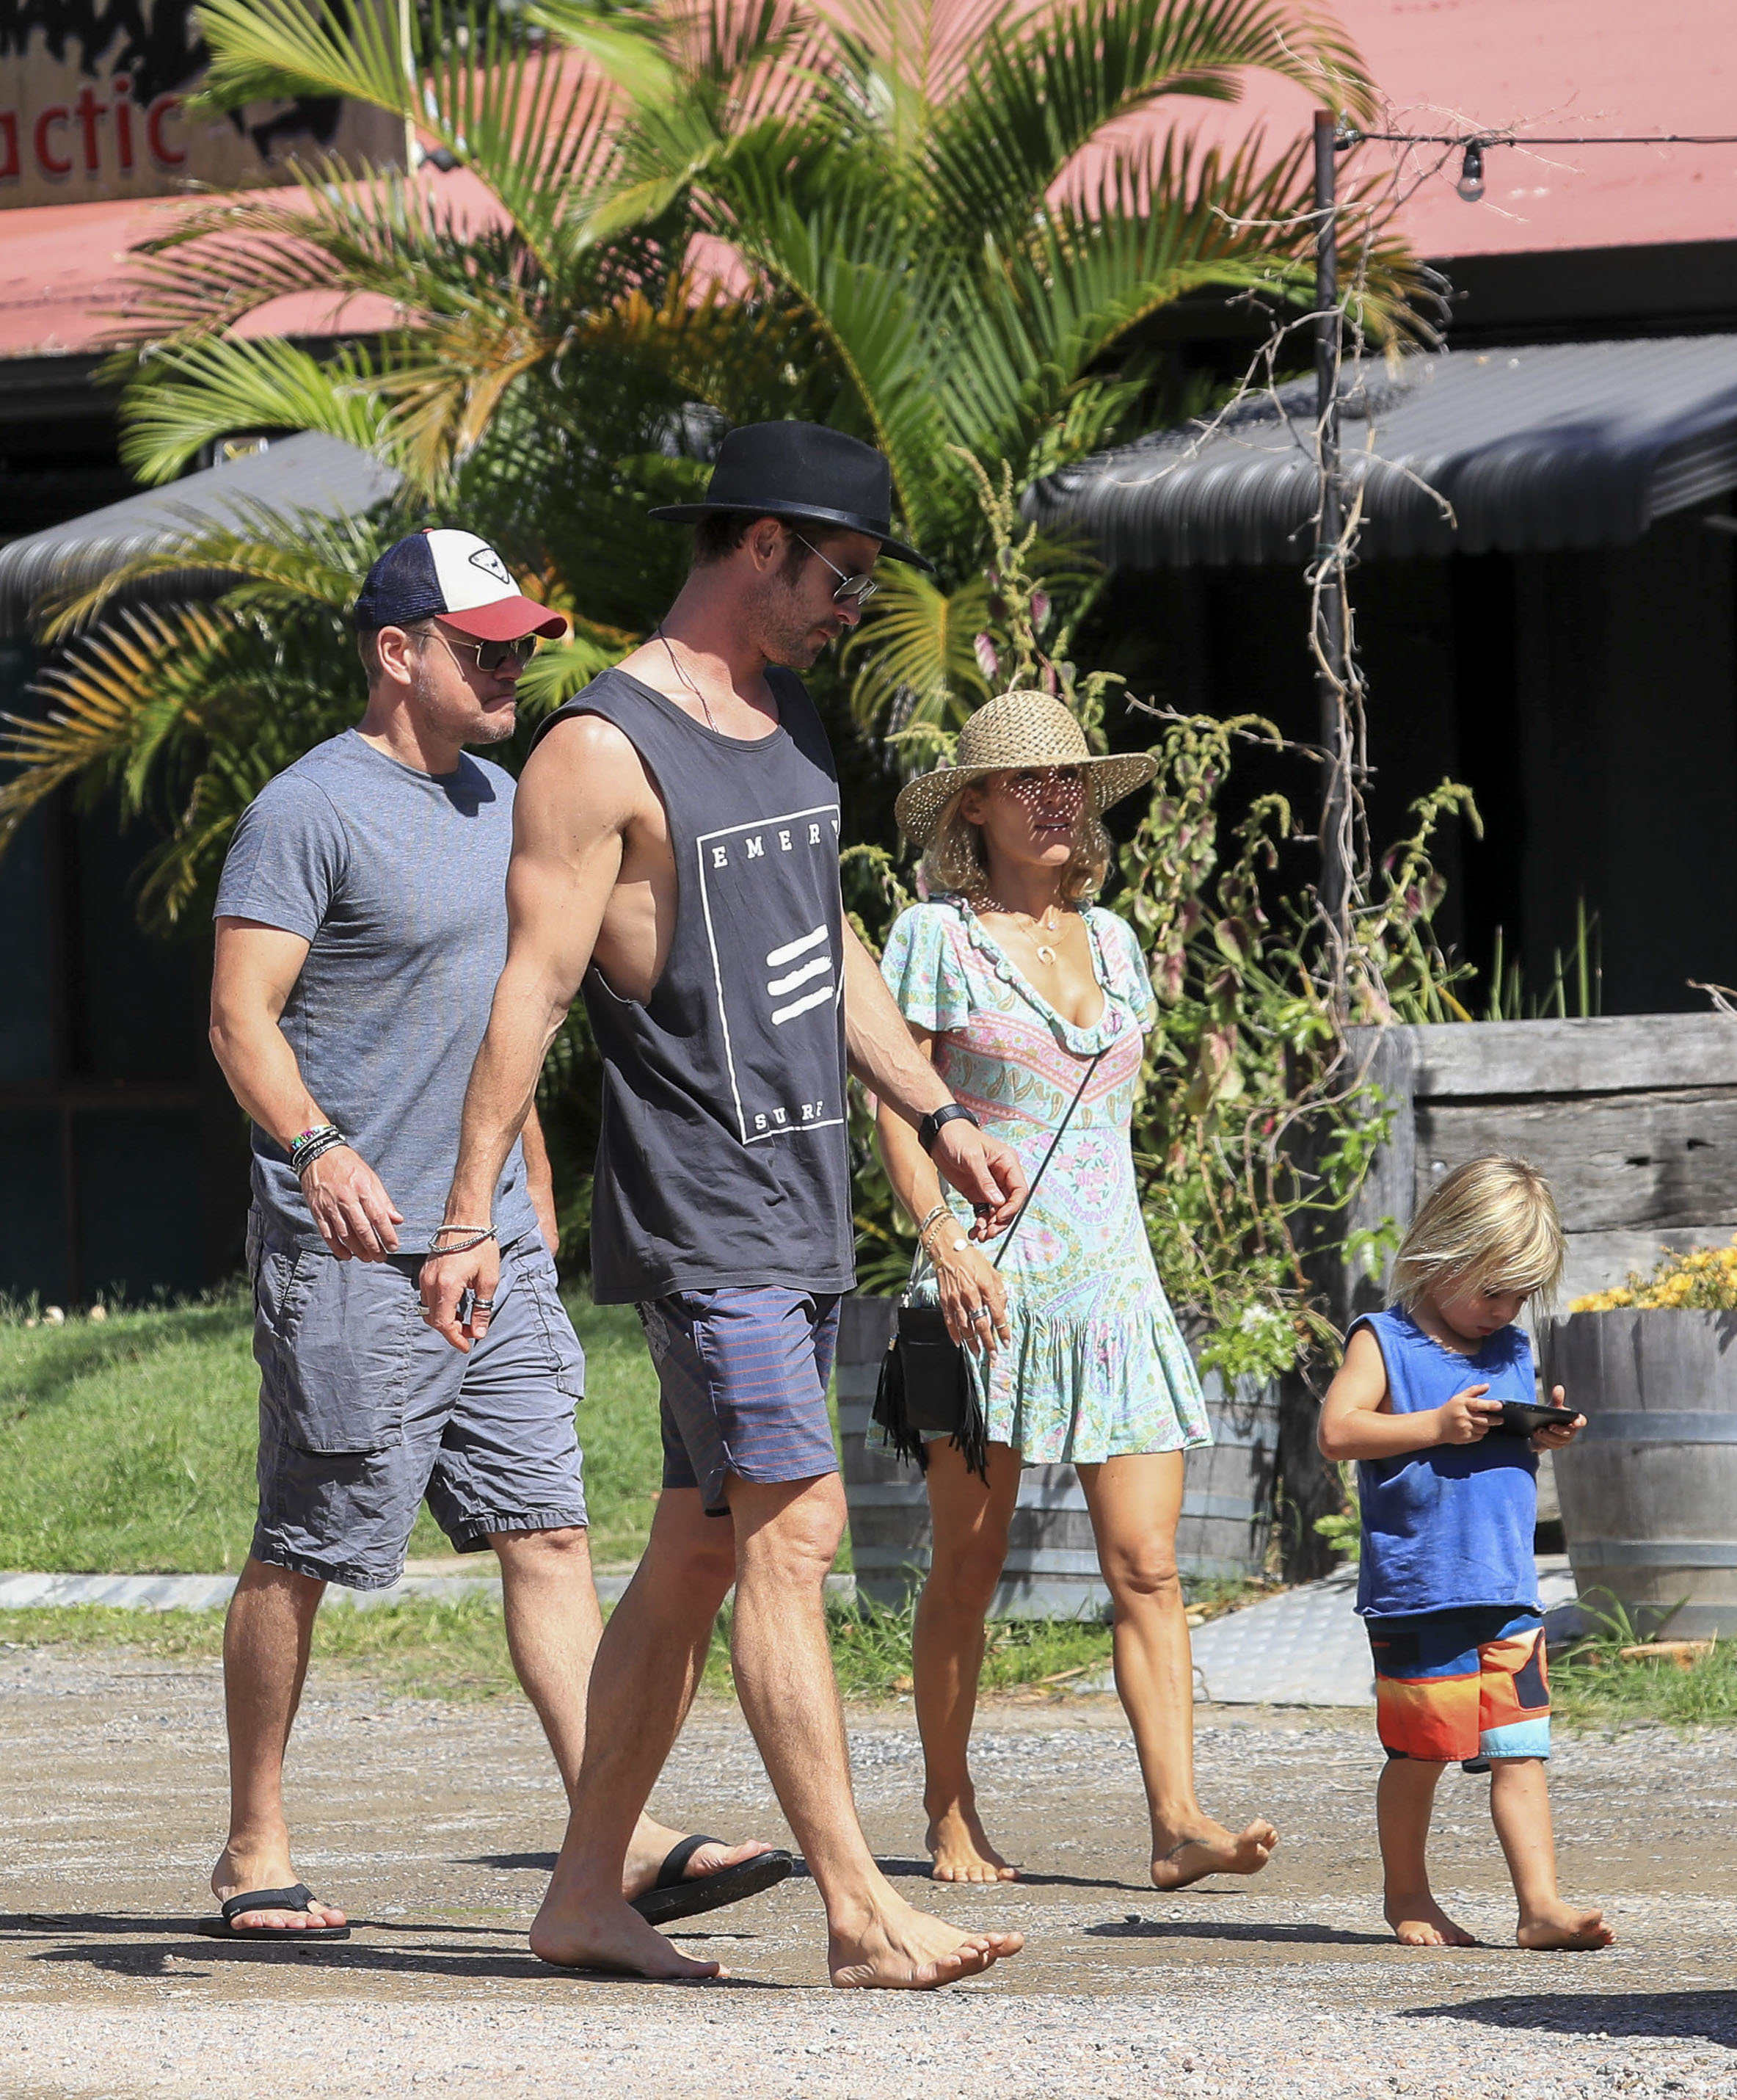 Matt Damon, Chris Hemsworth and Elsa Pataky head to lunch with their families in Byron Bay, Australia, on April 1, 2018.